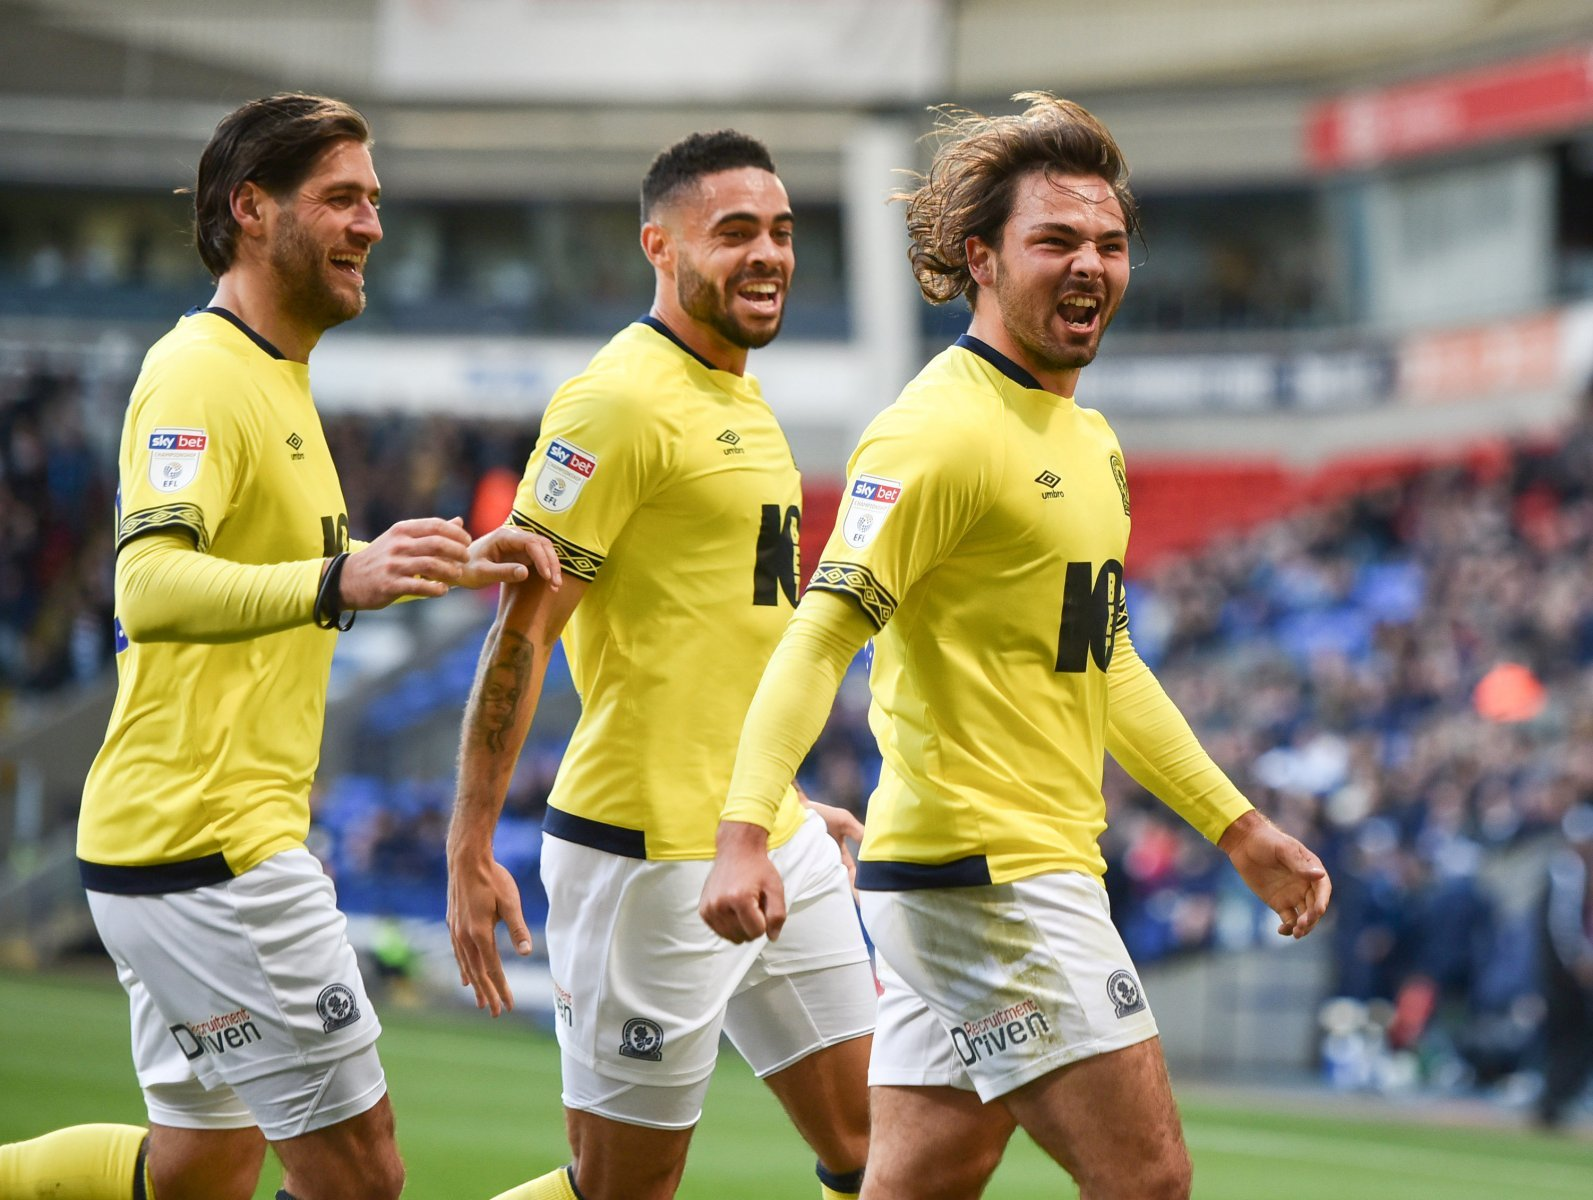 Bradley Dack suits Crystal Palace perfectly